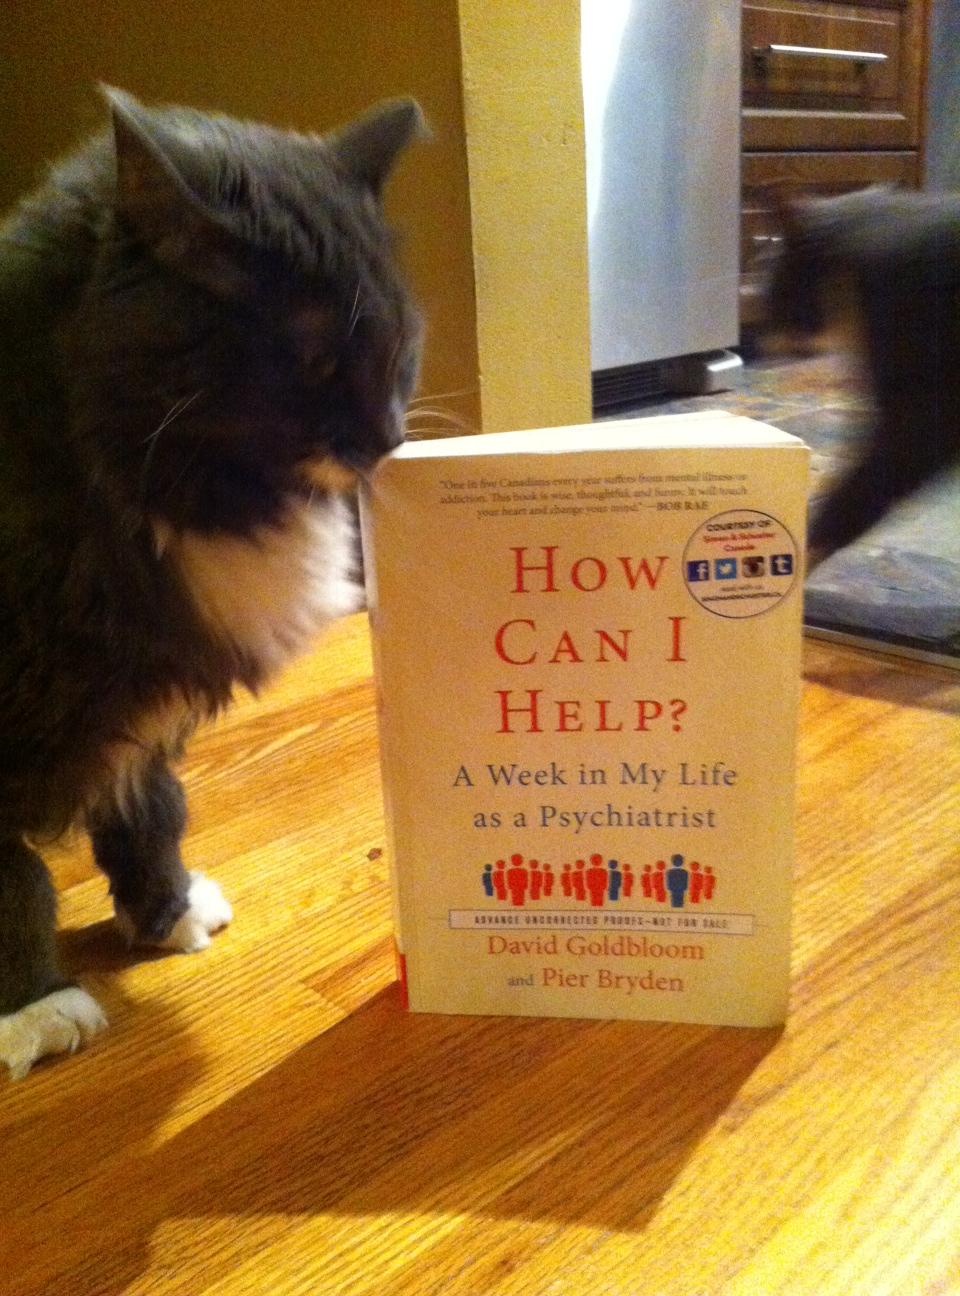 Book Review: How Can I Help? by David Goldbloom and Pier Bryden